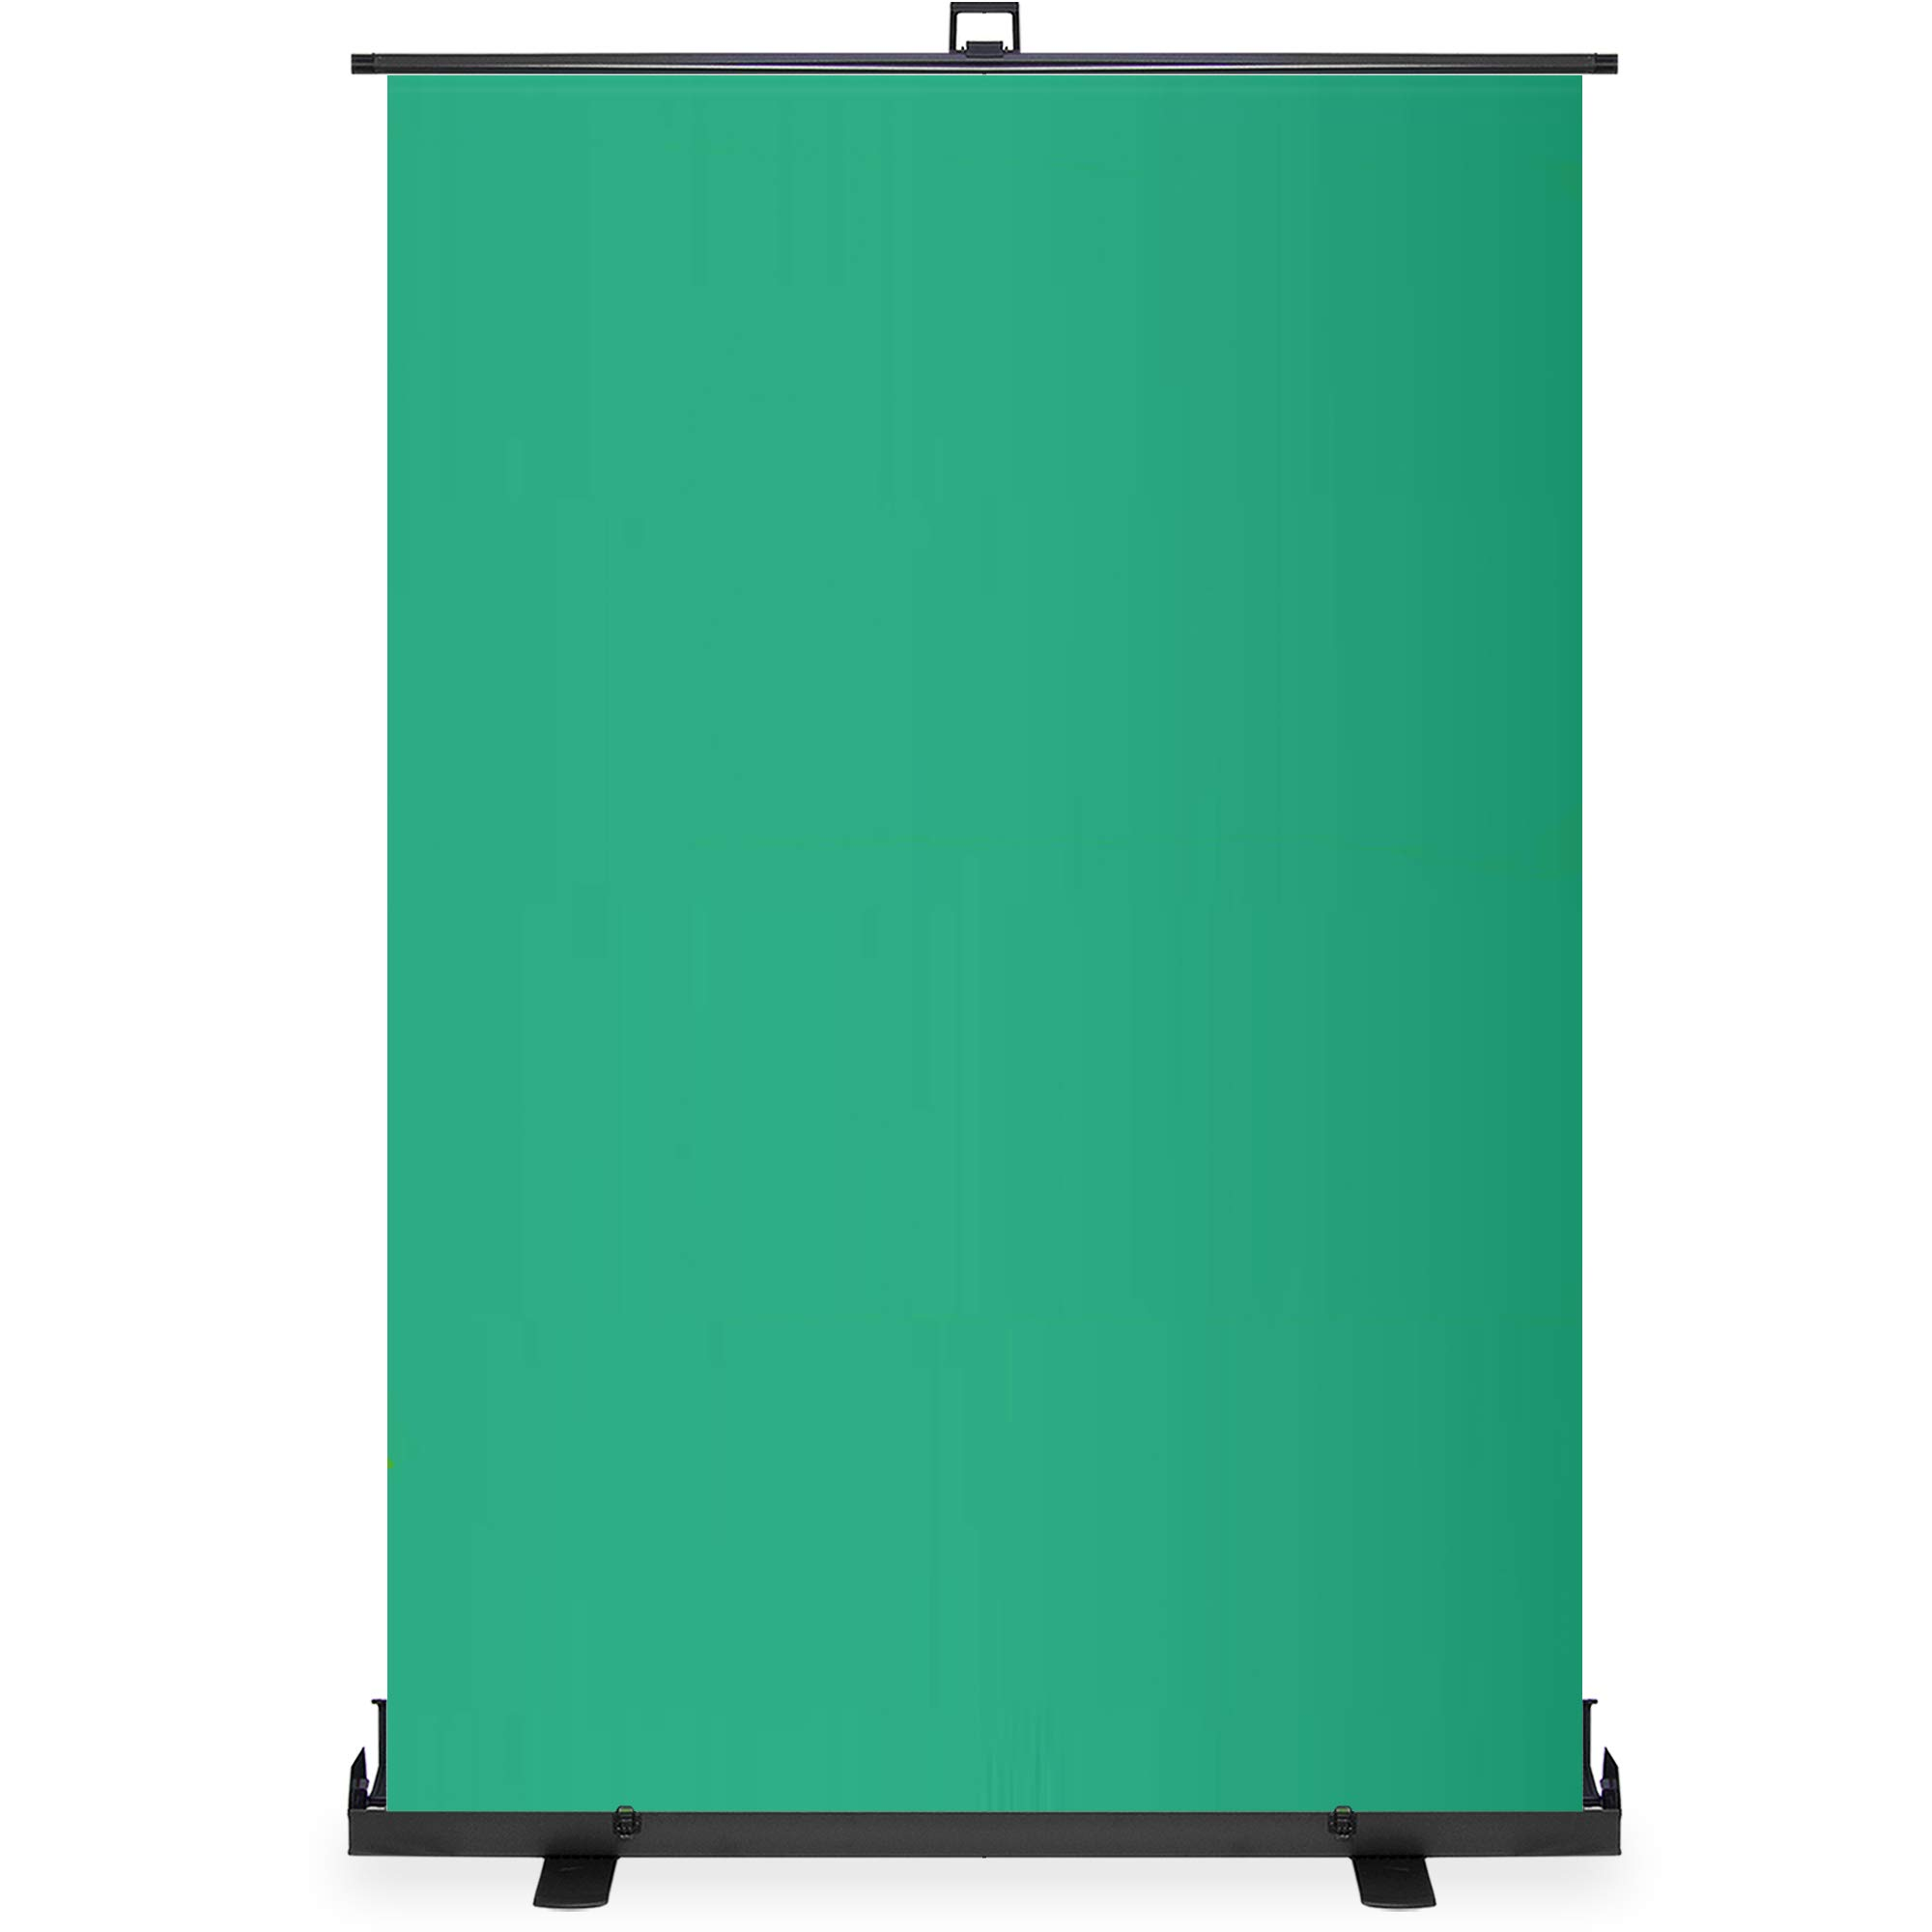 KHOMO GEAR Jumbo Size 55'' x 82'' Green Screen Collapsible Pull-Up Extra Large Streaming Portable Backdrop Setup with Auto-Locking Frame